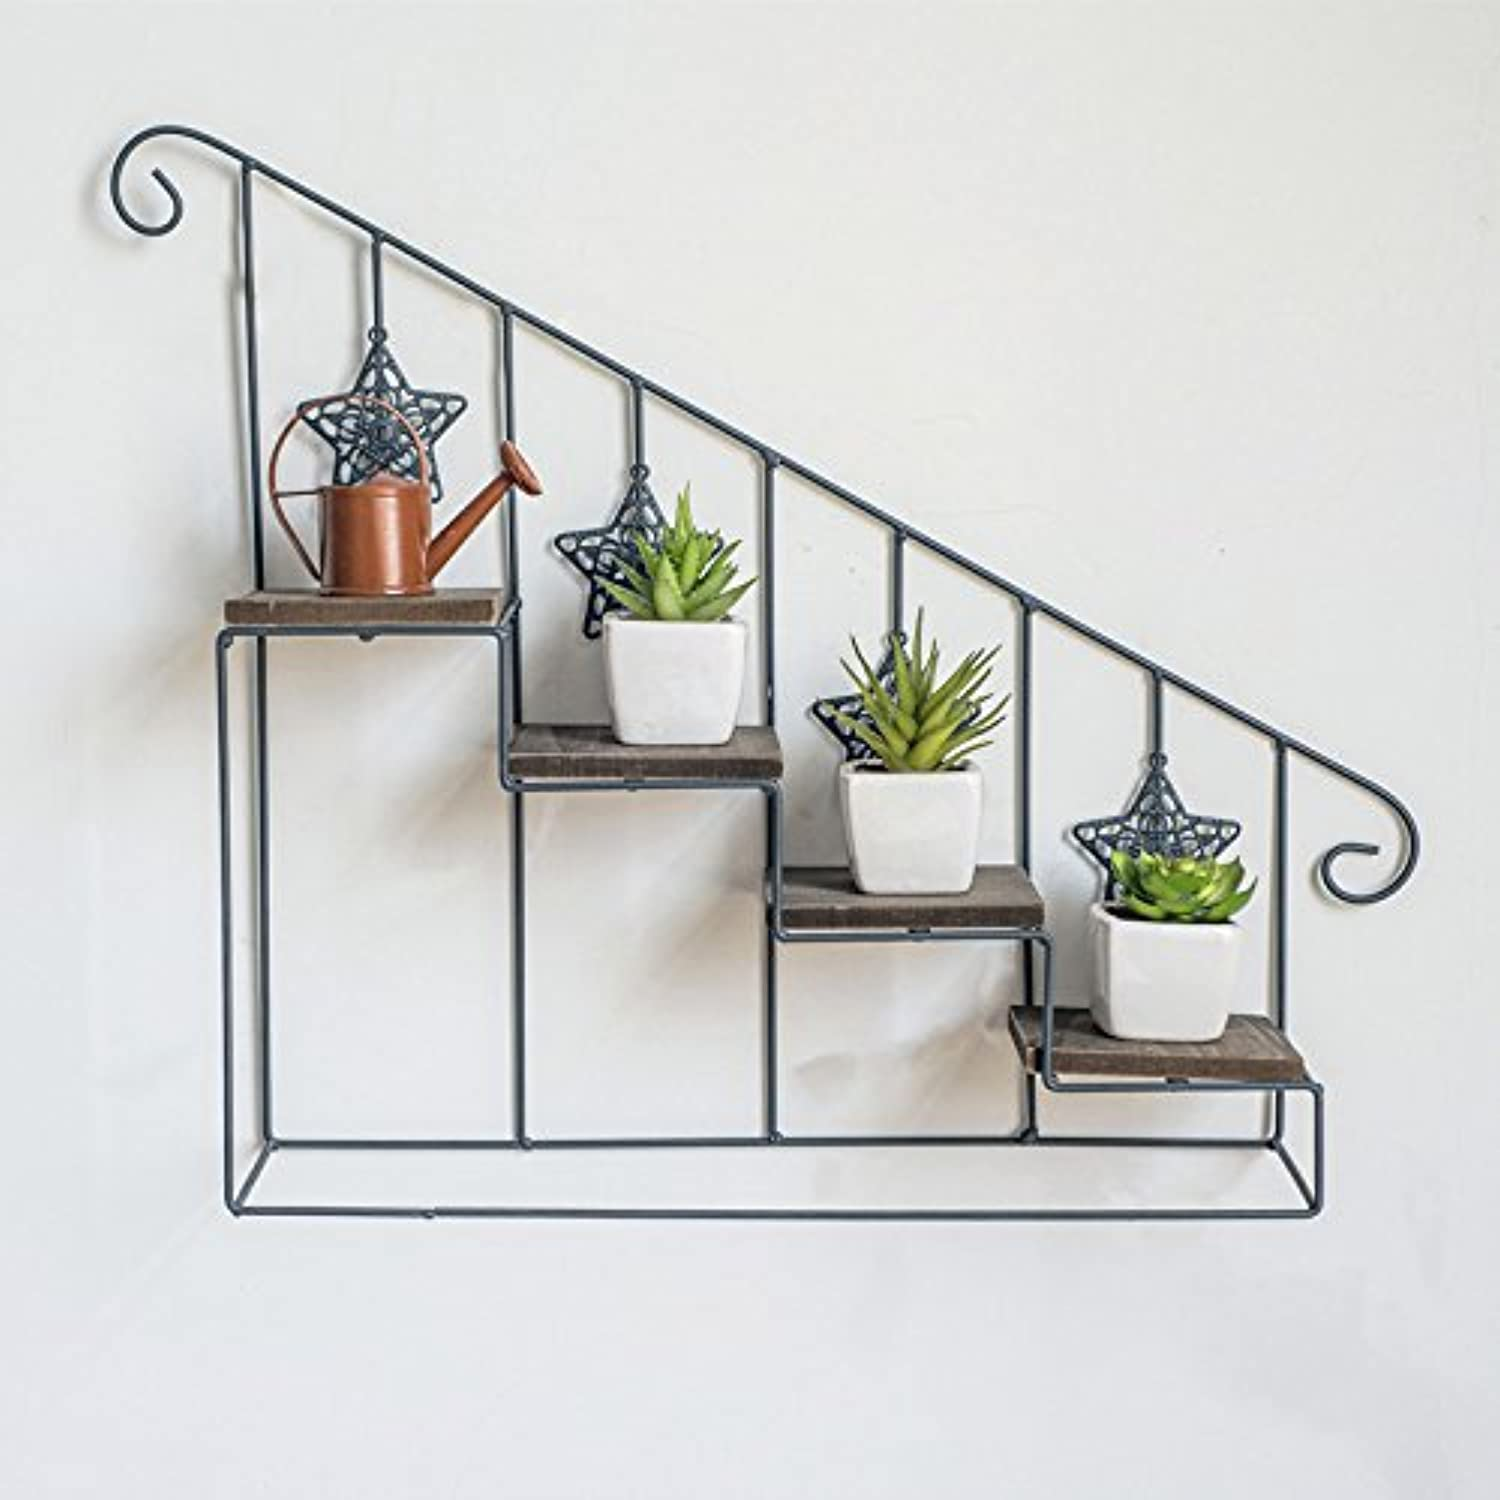 Wood Staircase Flower Stand Rack, Multi-Storey Floor-Style Wall-Mounted Flower Pot Rack, Indoor Living Room Small Pot Rack